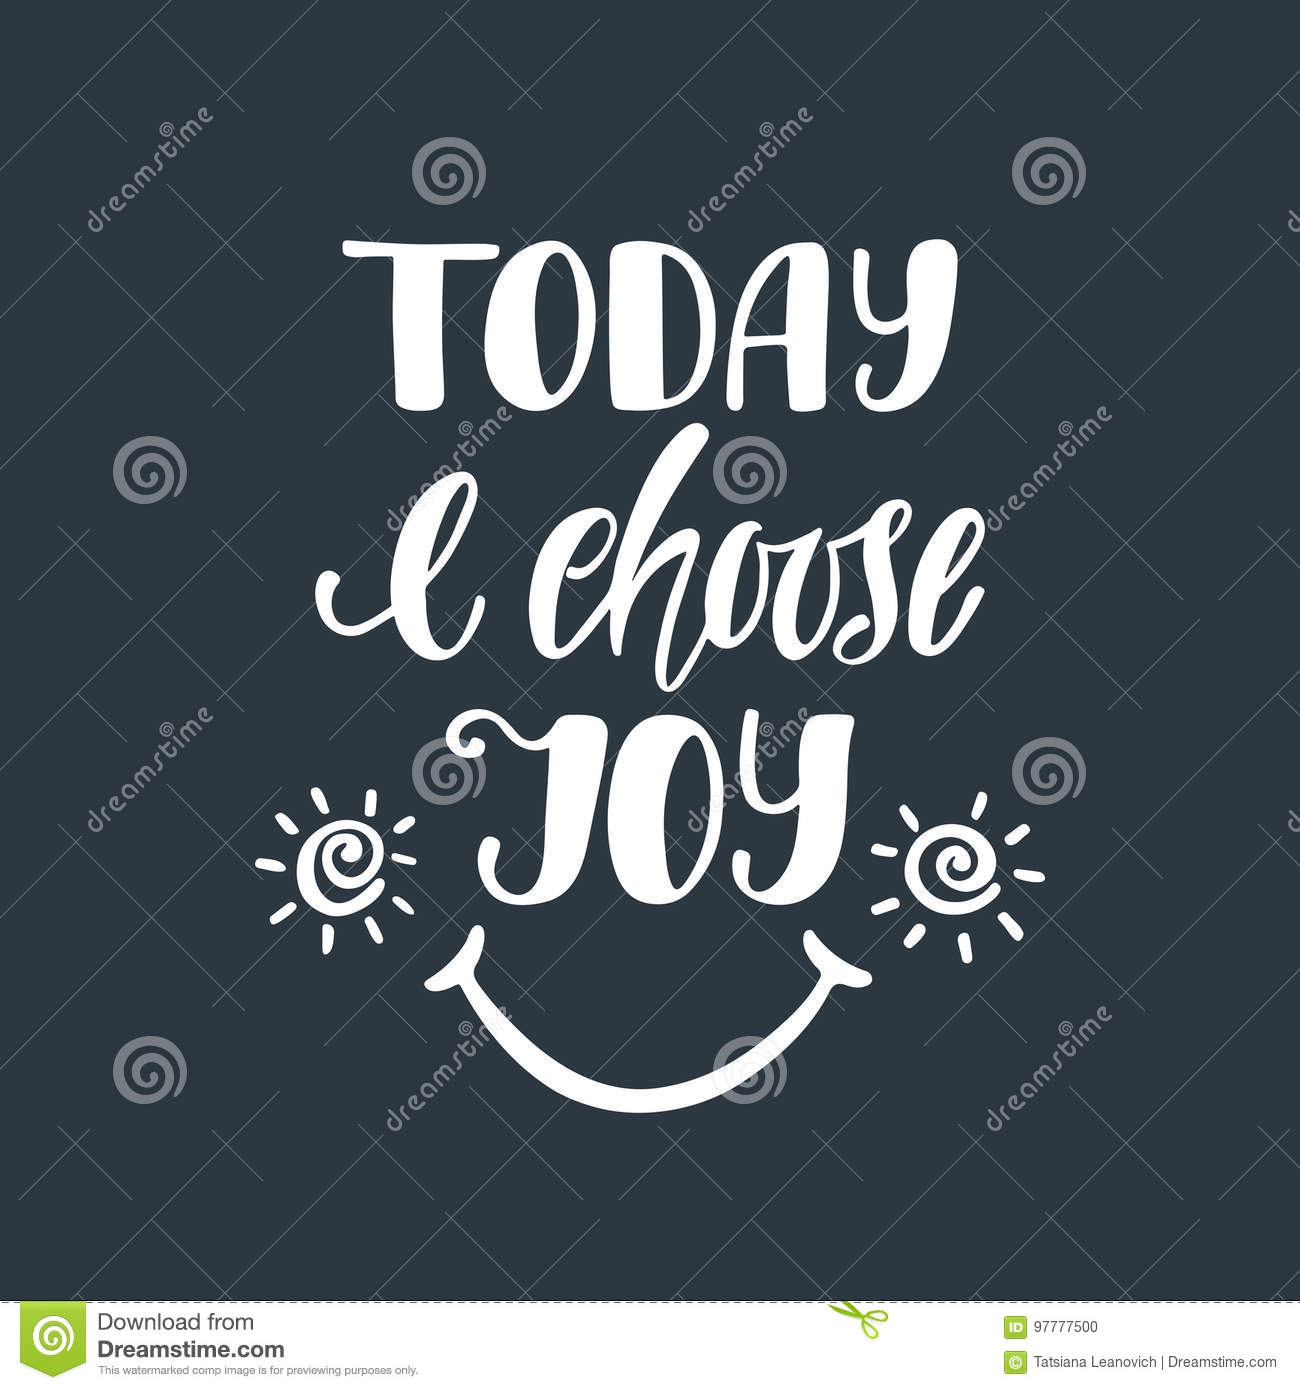 Quote For Today About Happiness Today I Choose Joyinspirational Quote Stock Illustration  Image